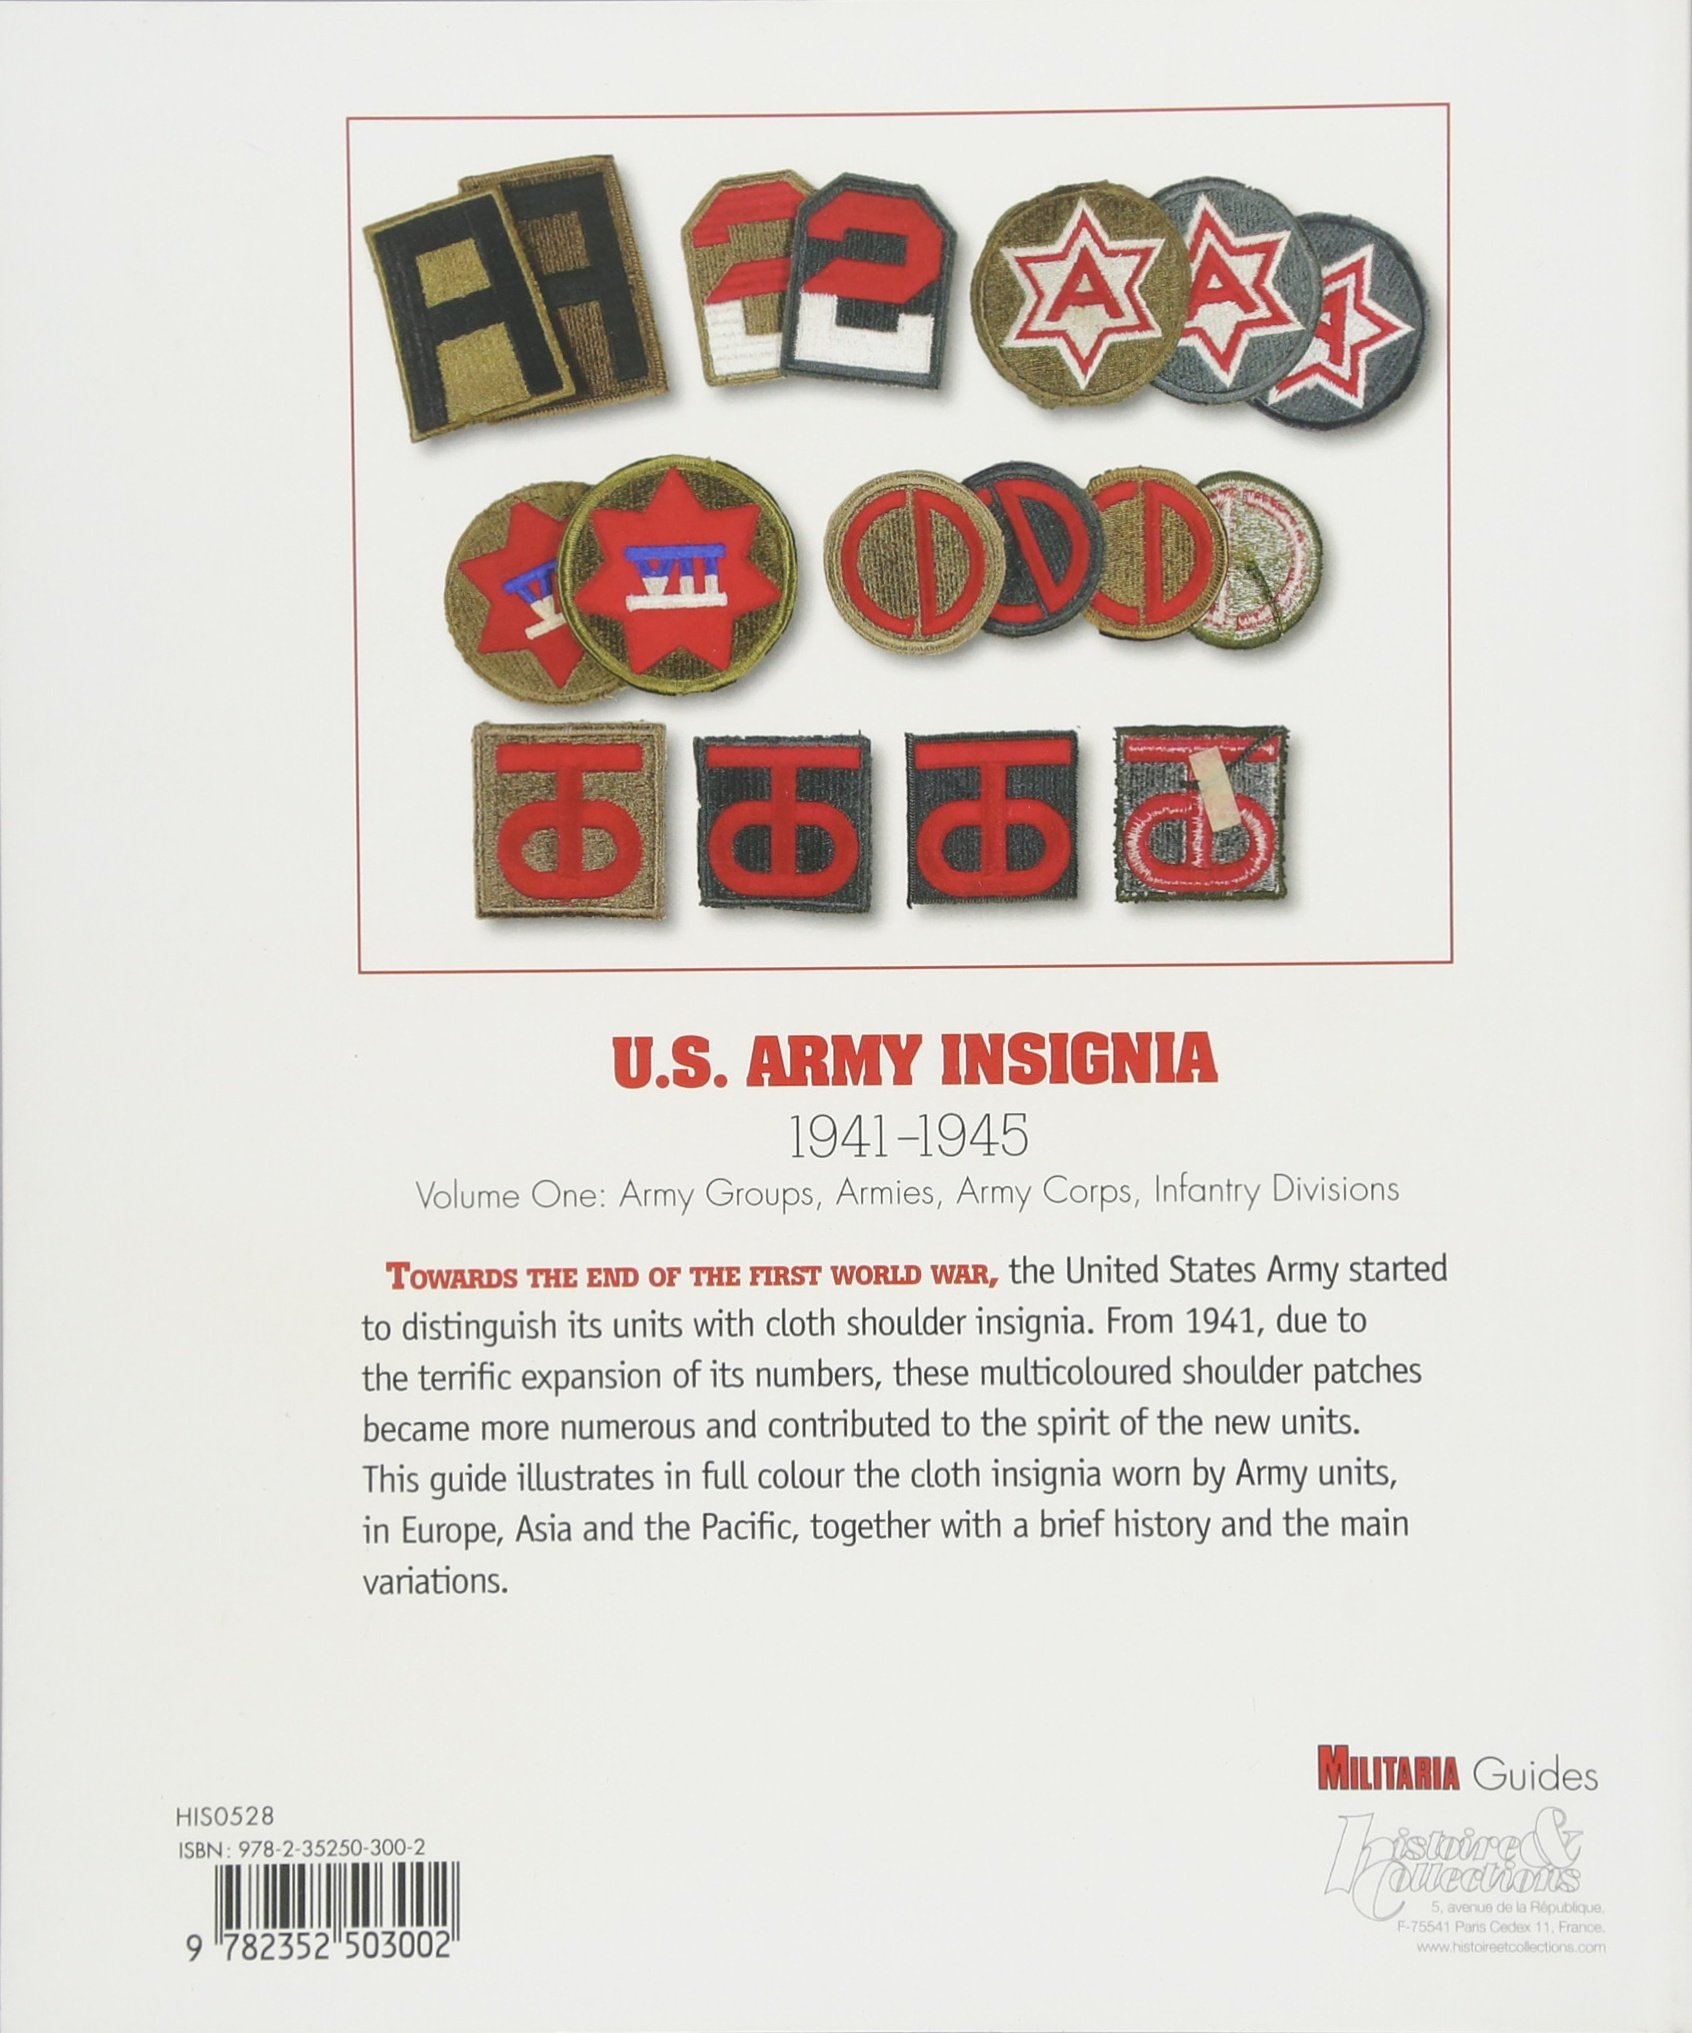 U.S. Army Insignia: 1941-1945 (Militaria Guides): Pierre Besnard:  9782352503002: Amazon.com: Books